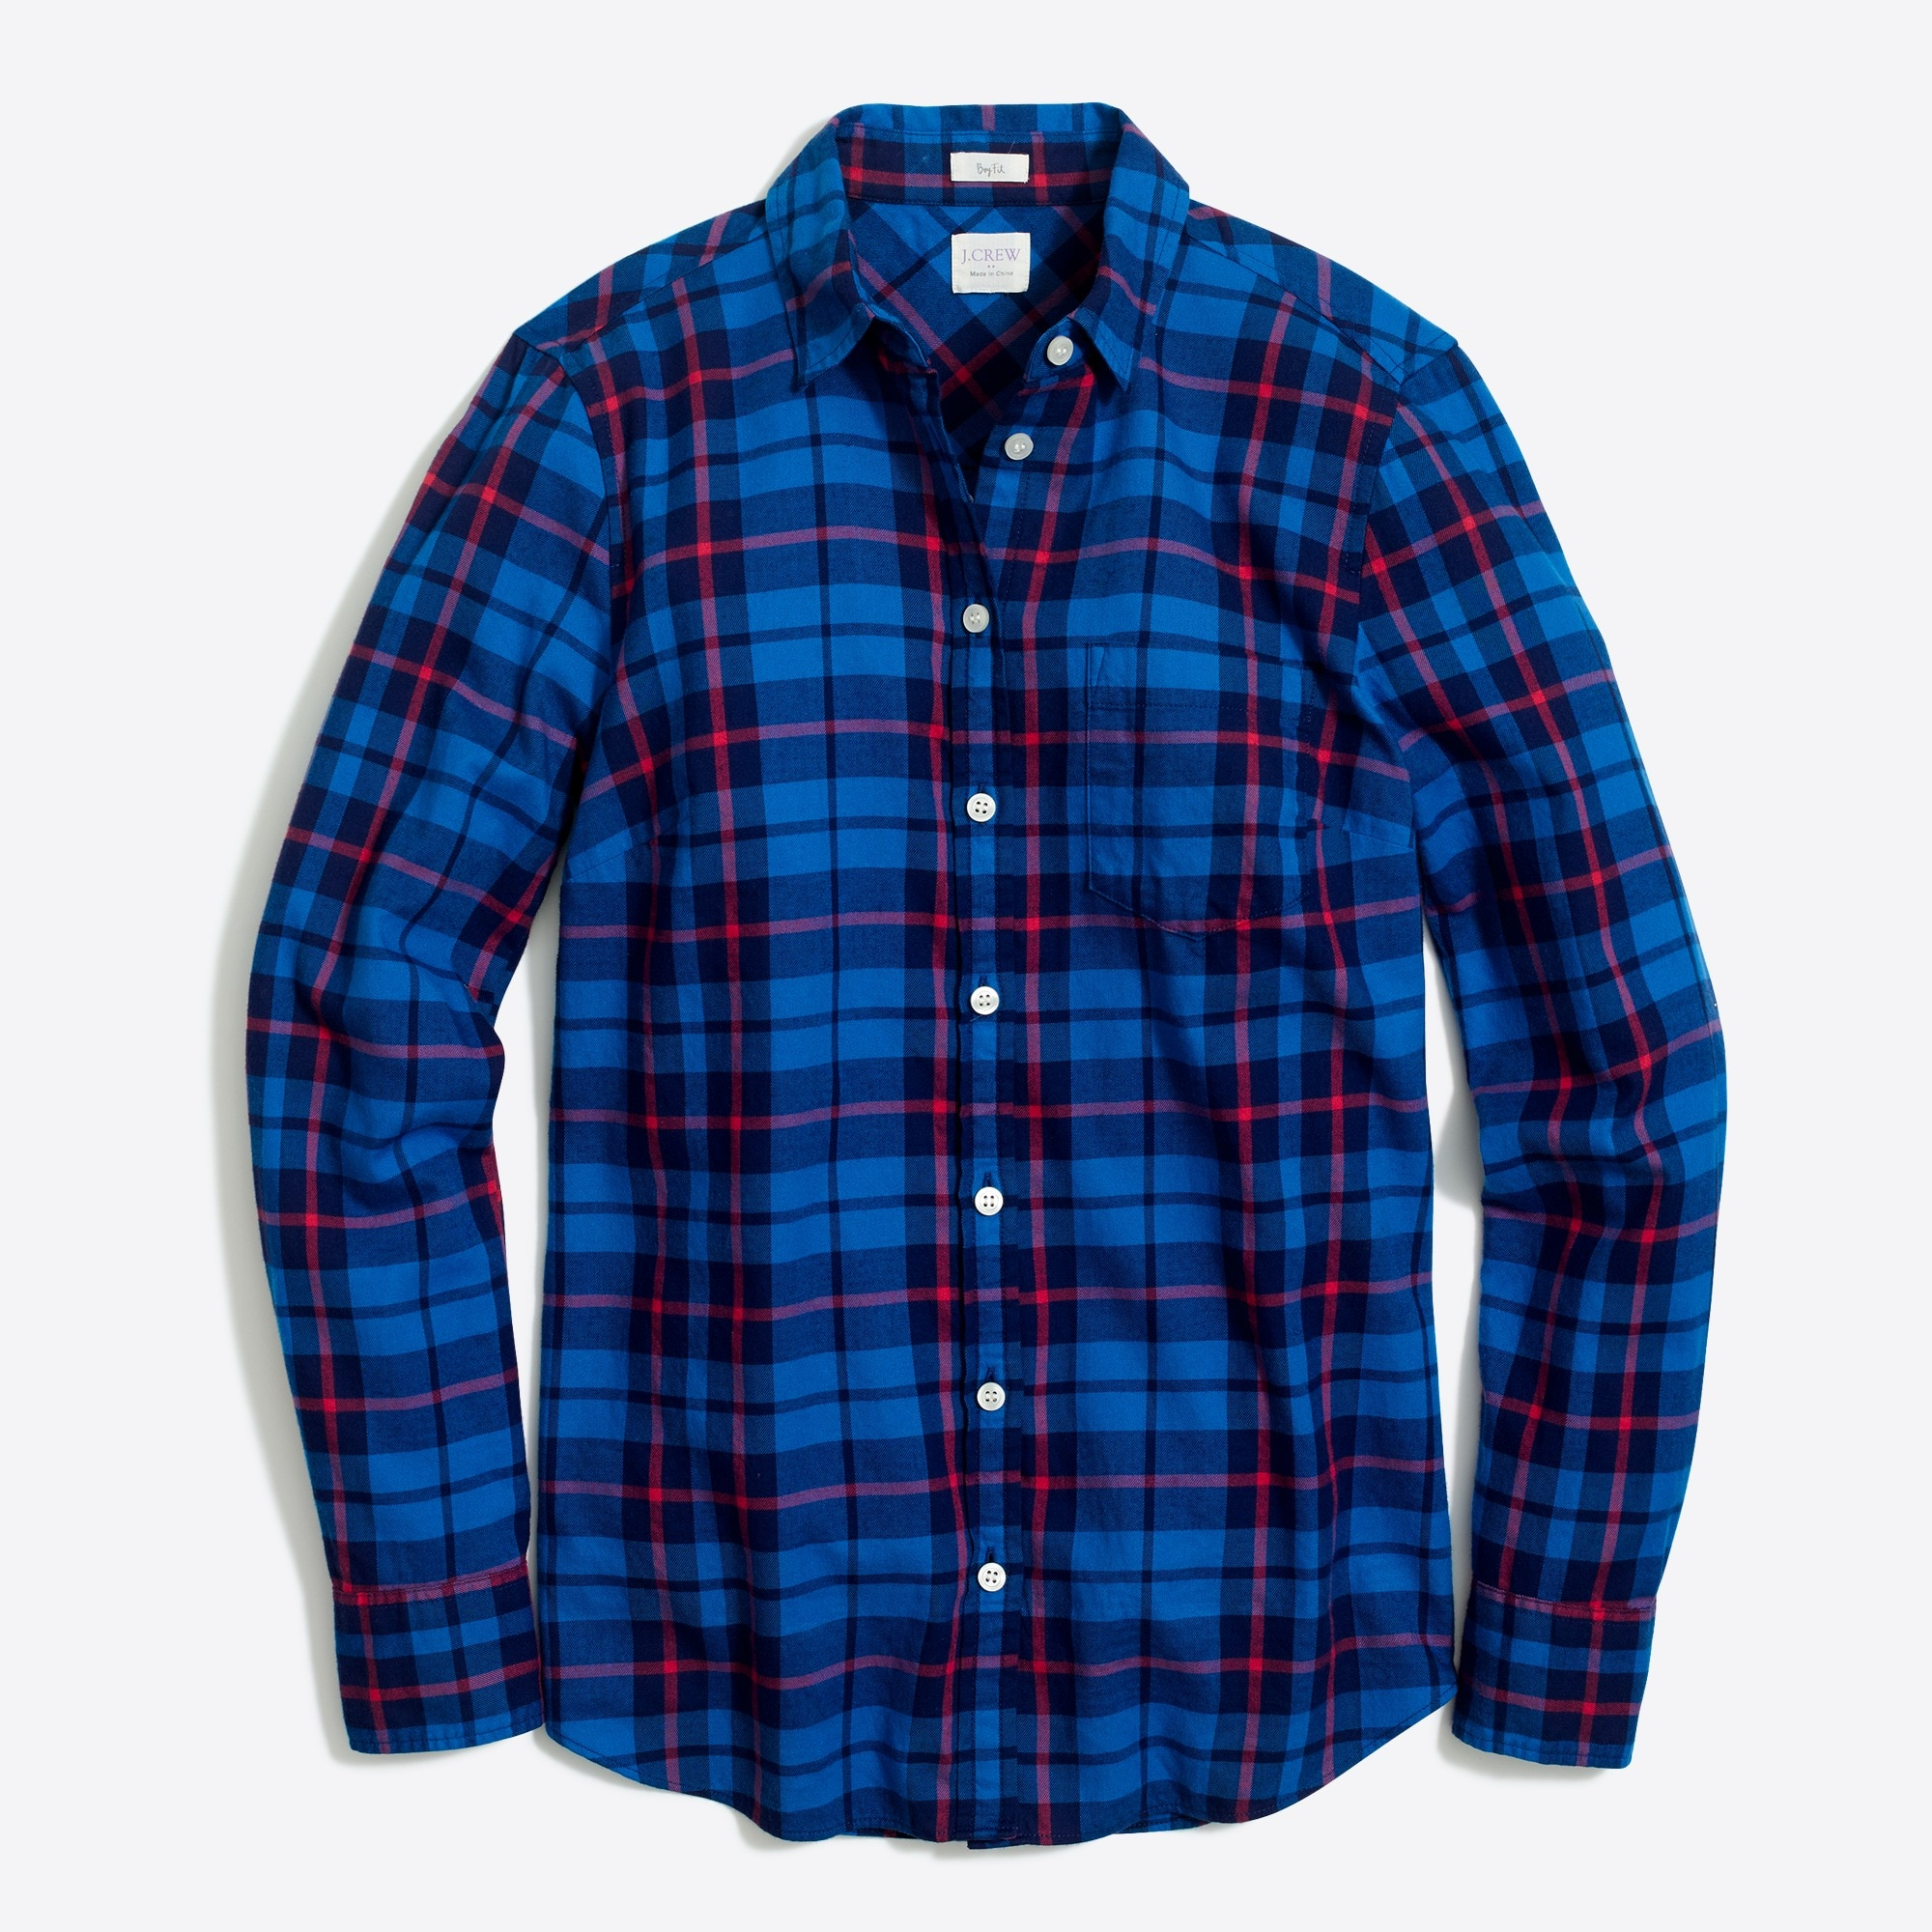 Image 1 for Petite flannel shirt